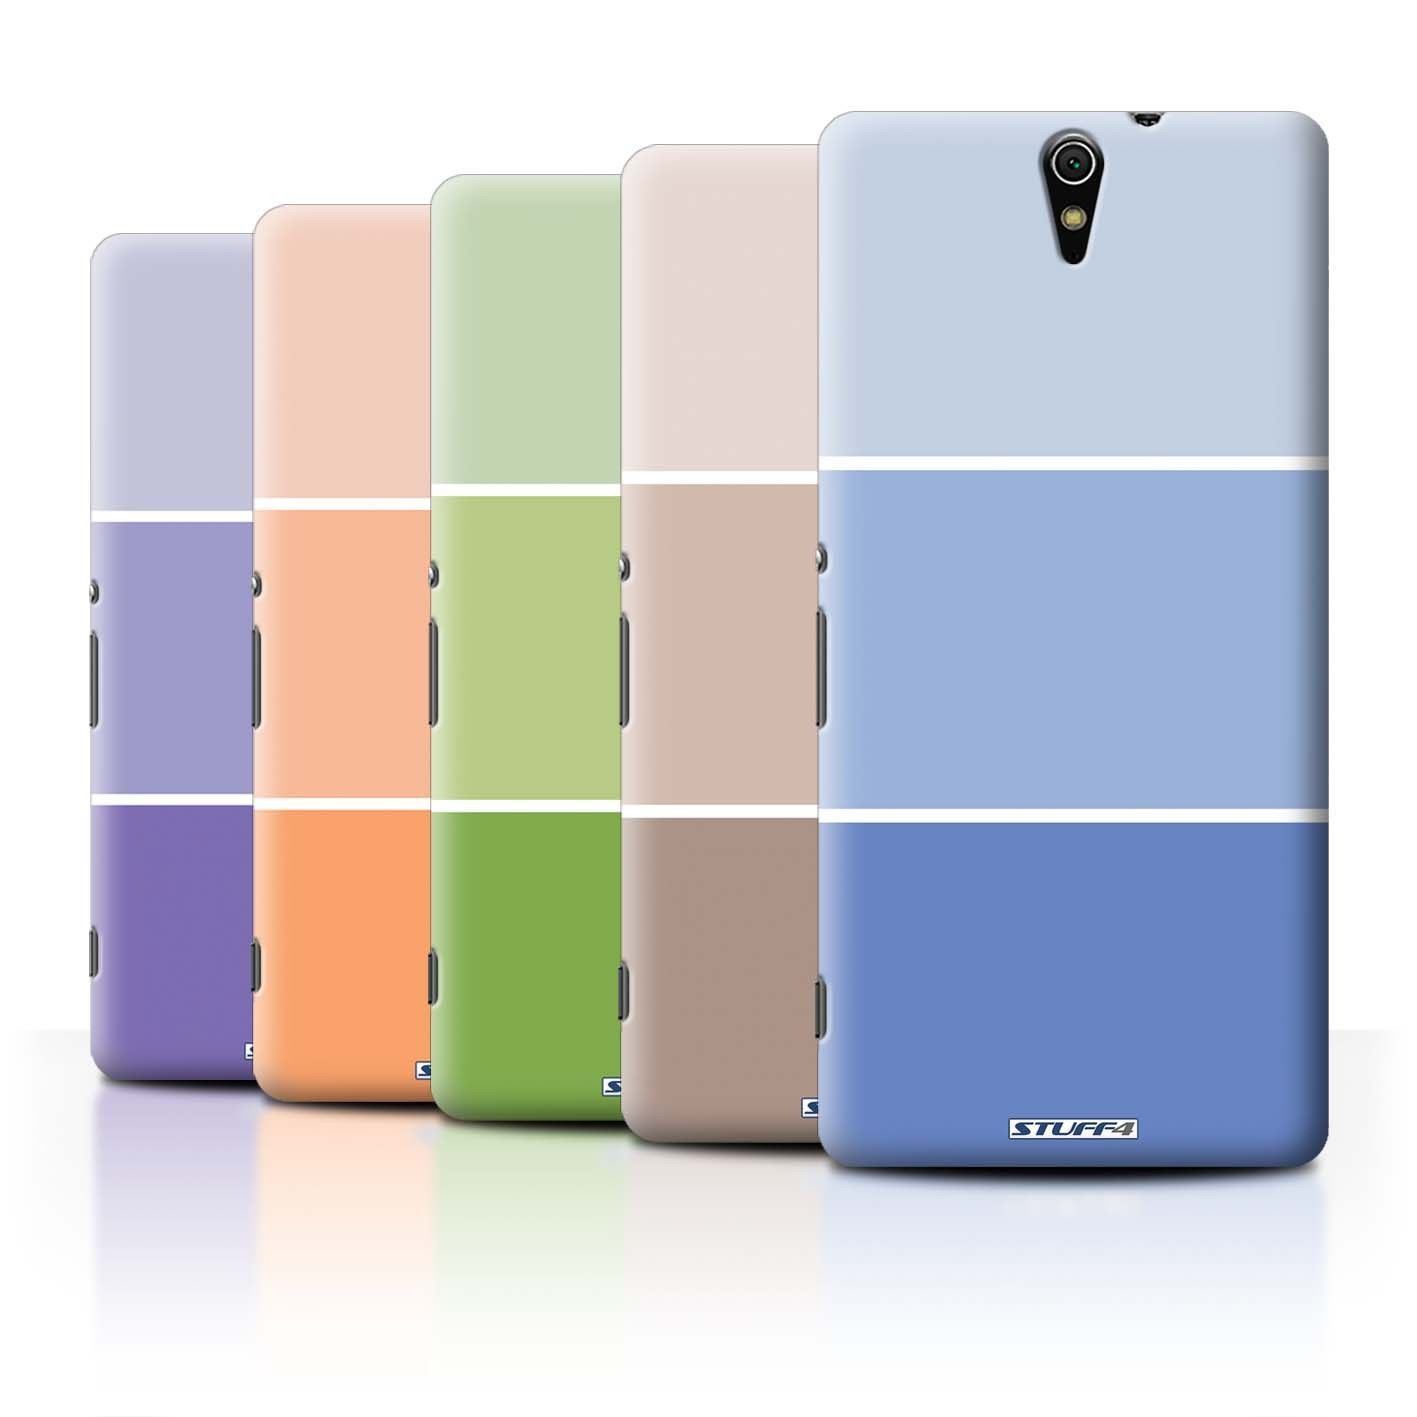 £5 9 GBP Stuff4 Phone Case Back Cover For Sony Xperia C5 Ultra Pastel Colour Tones ebay Electronics